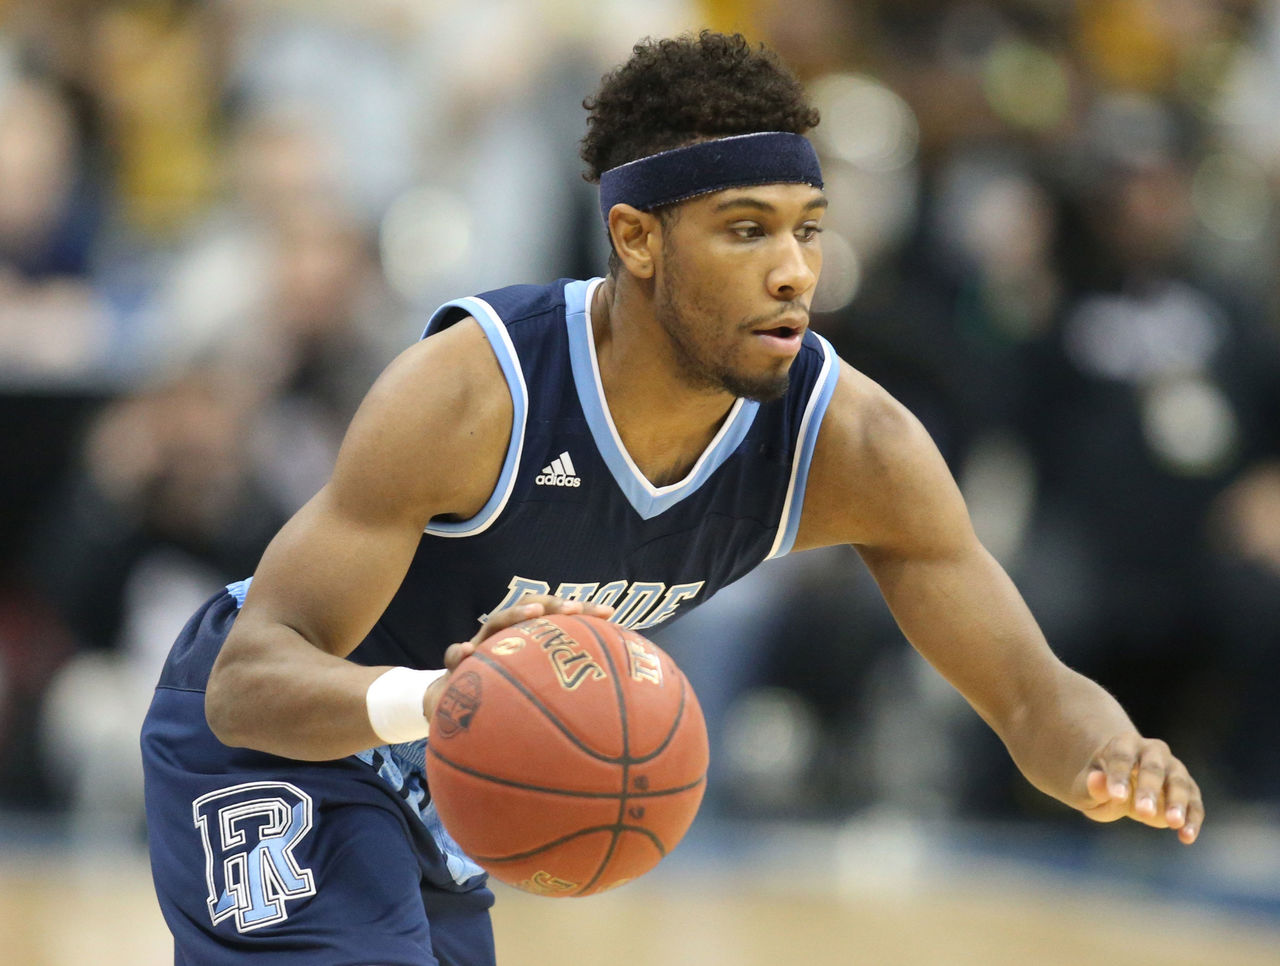 Cropped 2017 03 12t203641z 1388413100 nocid rtrmadp 3 ncaa basketball atlantic 10 conference tournament championship rhode island vs vcu